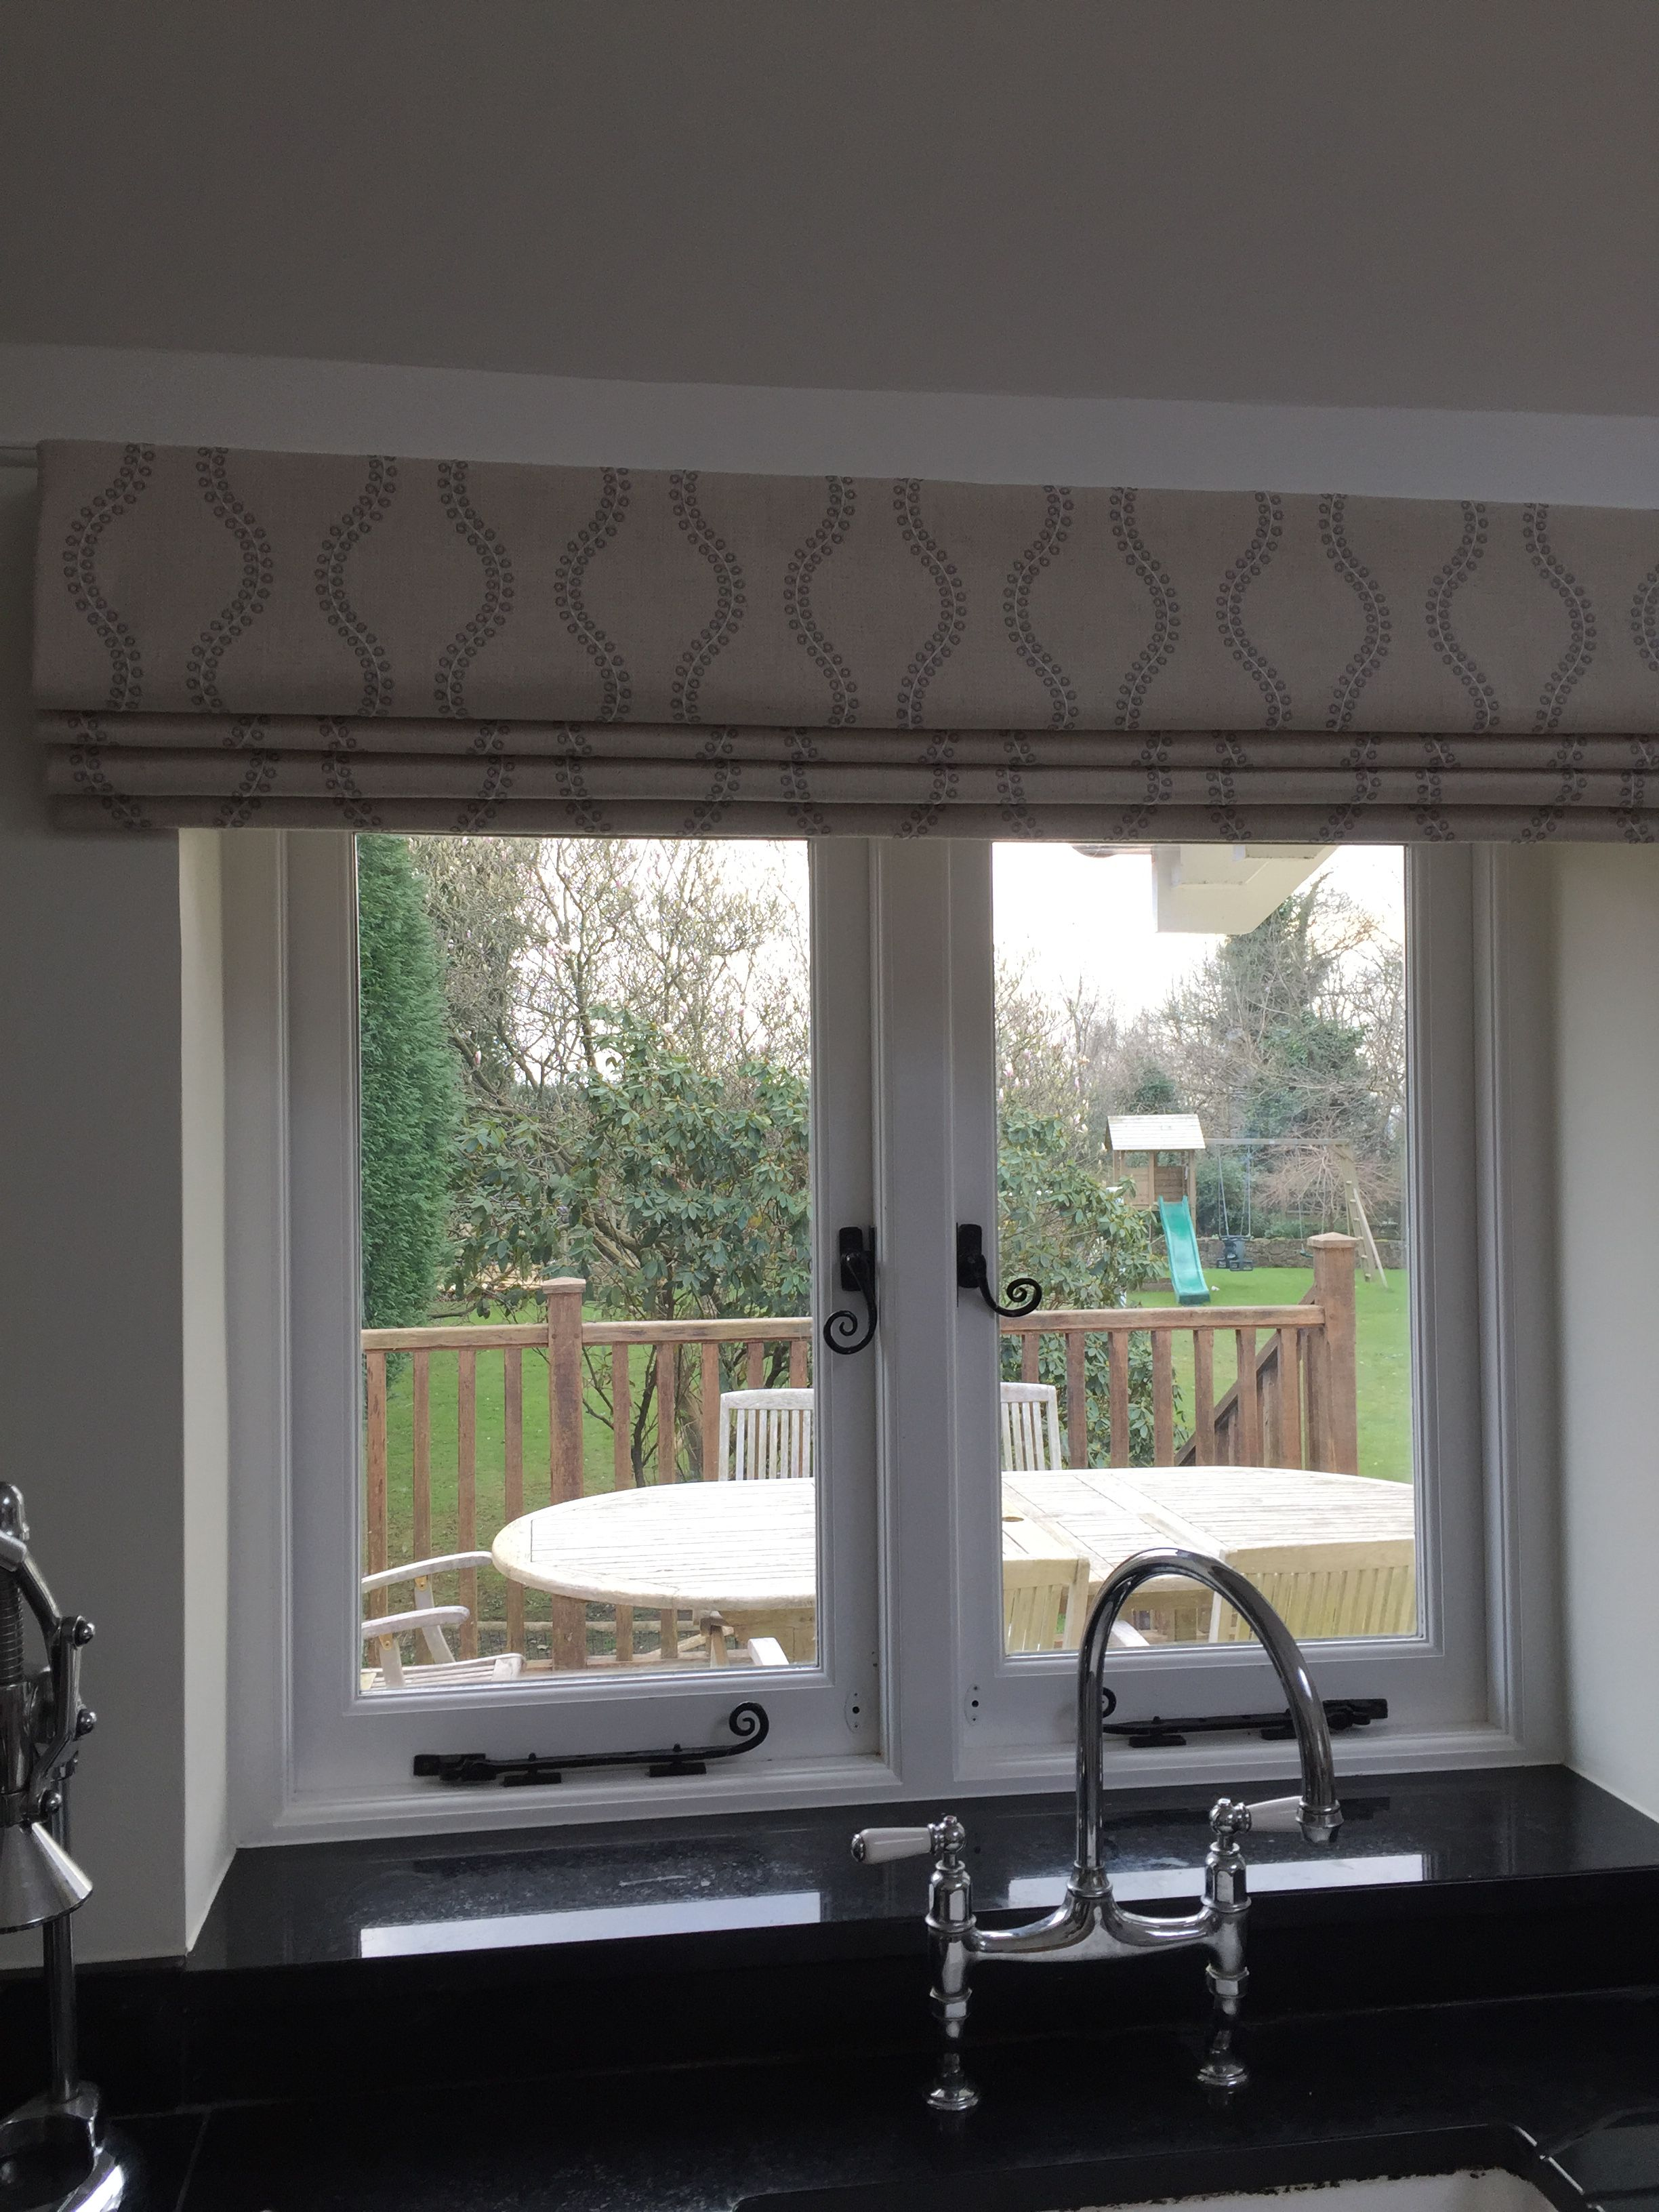 Roman Blind Above A Sink Area In A Kitchen Handmade By Louise Cowan Interiors Blinds Farm Style Kitchen Kitchen Blinds Above Sink